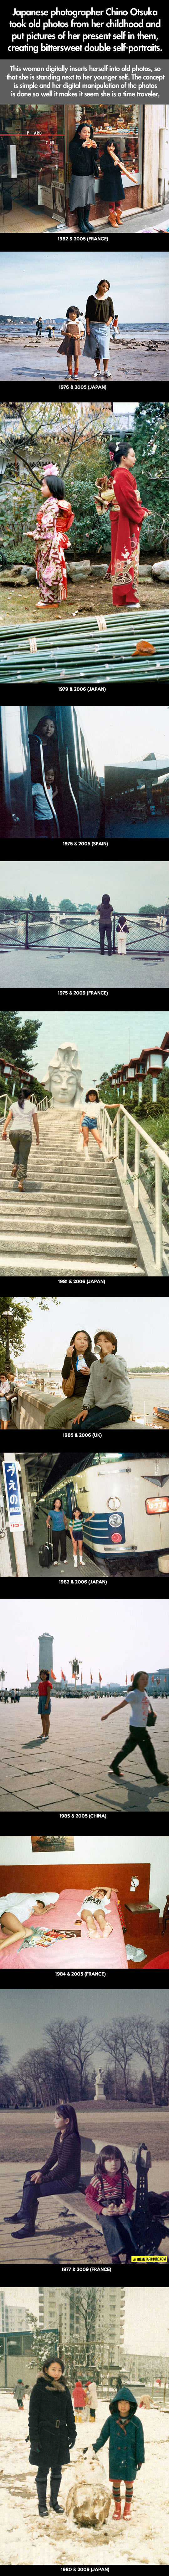 funny-Asian-woman-girl-time-travel